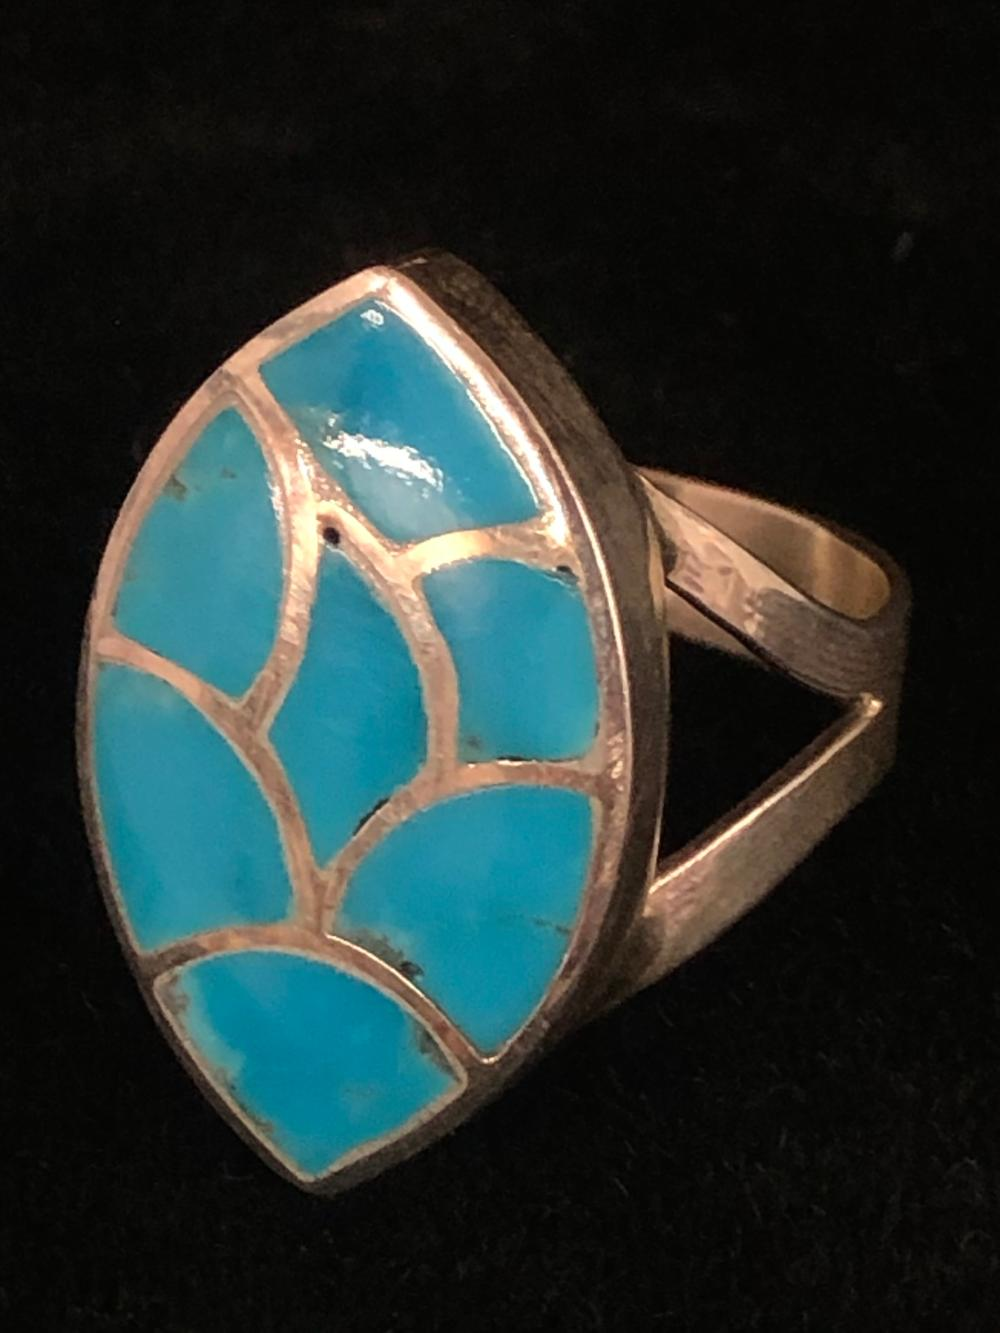 Turquoise inlay with silver channels sterling silver ring